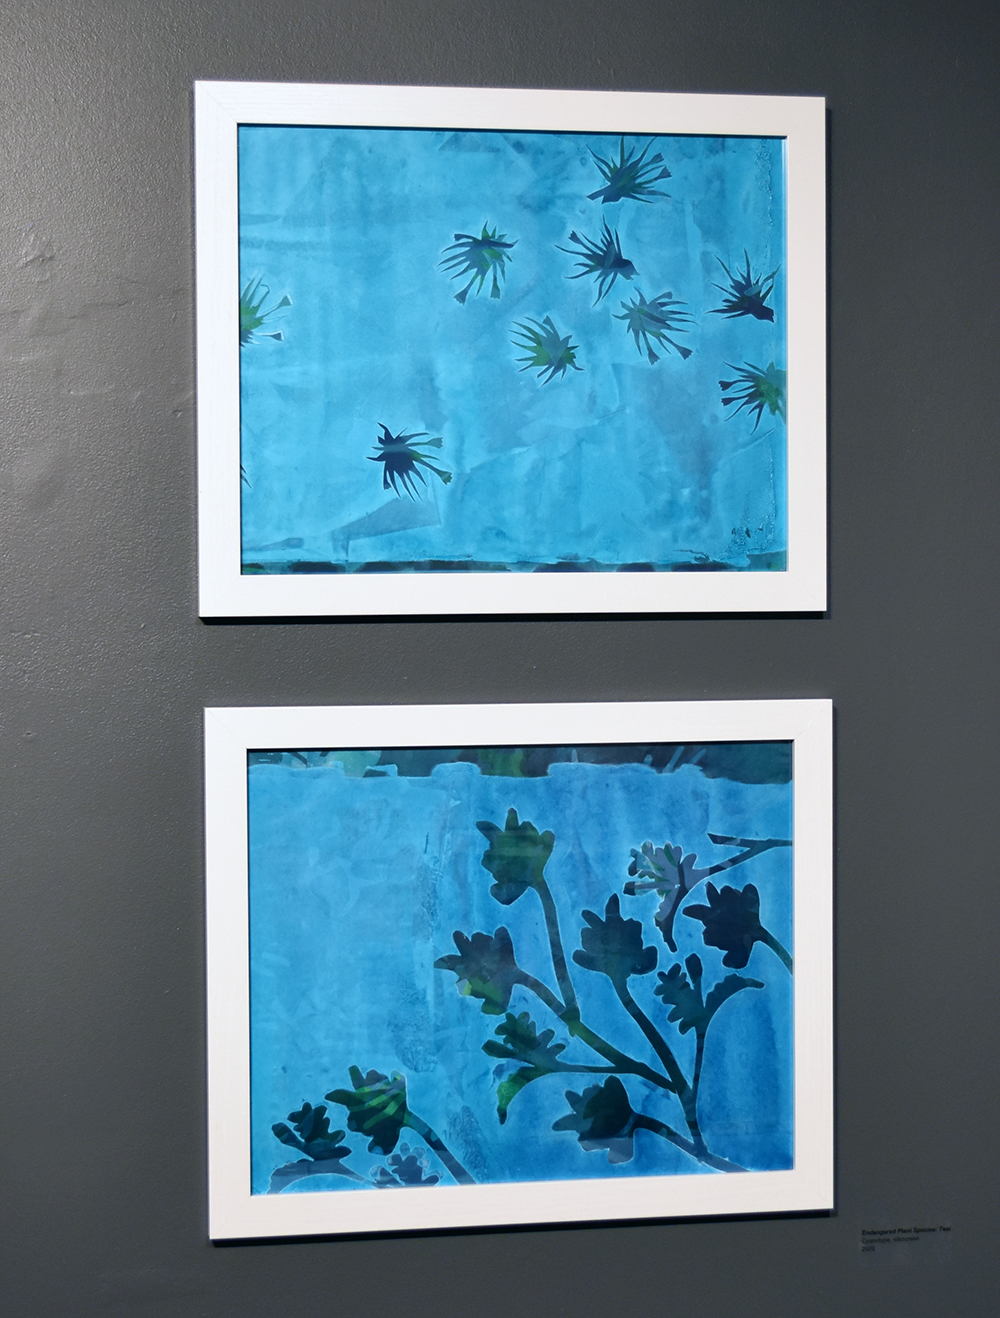 Kimberly Ritchie, Endangered Plant Species: Teal. Cyanotype, silkscreen. 2020.